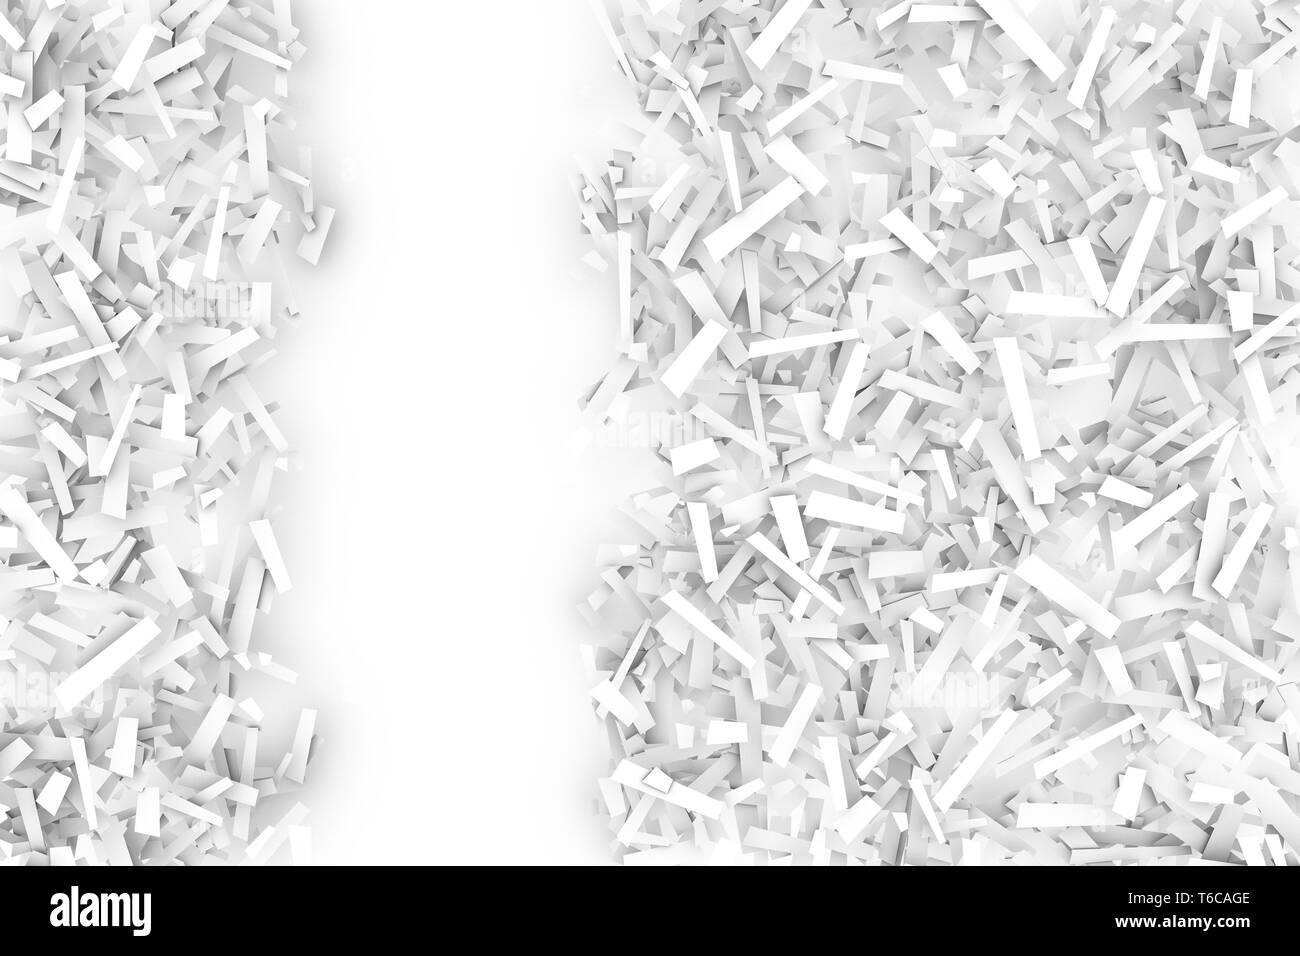 A tangled pile of white geometric confetti shapes on a bright background.  3D illustration.  Space for text left. - Stock Image